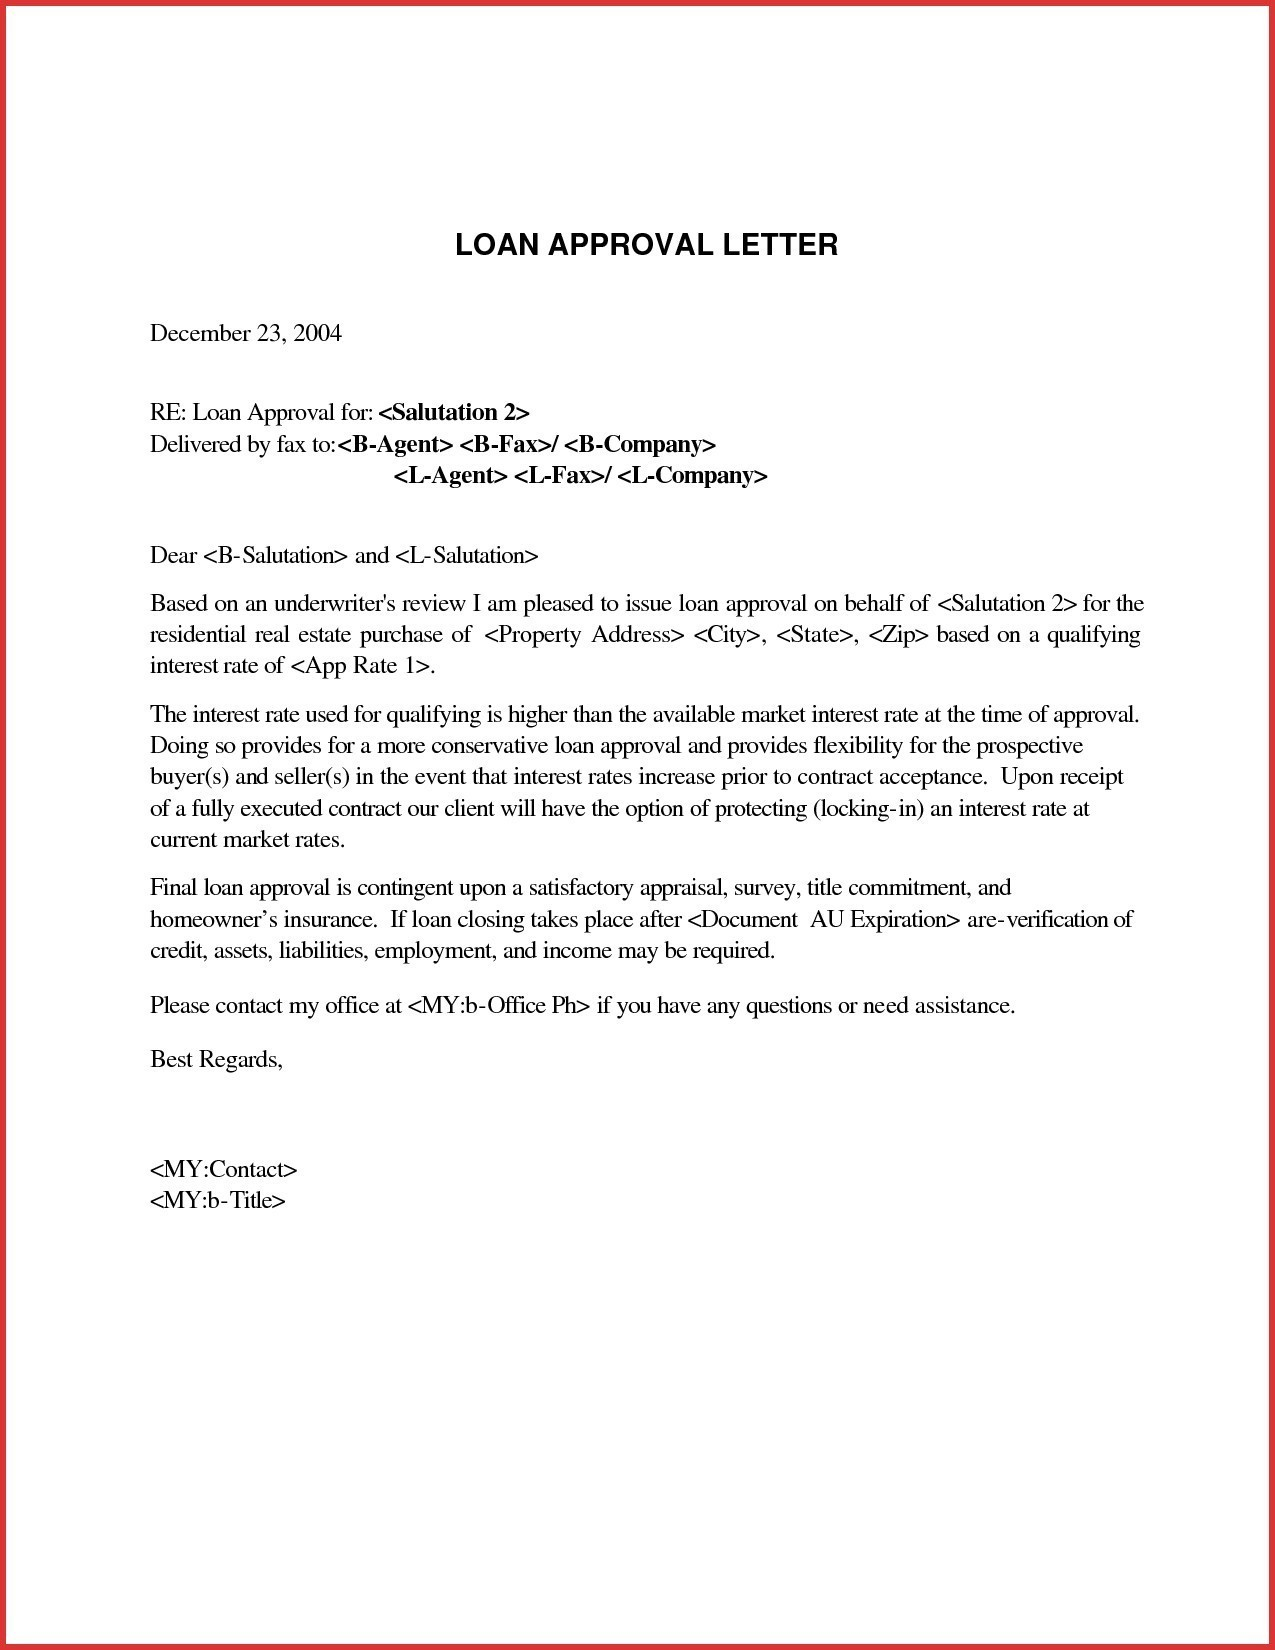 Pre Approval Letter Template - Letter format for Loan Request From Employer New Loan Request Letter